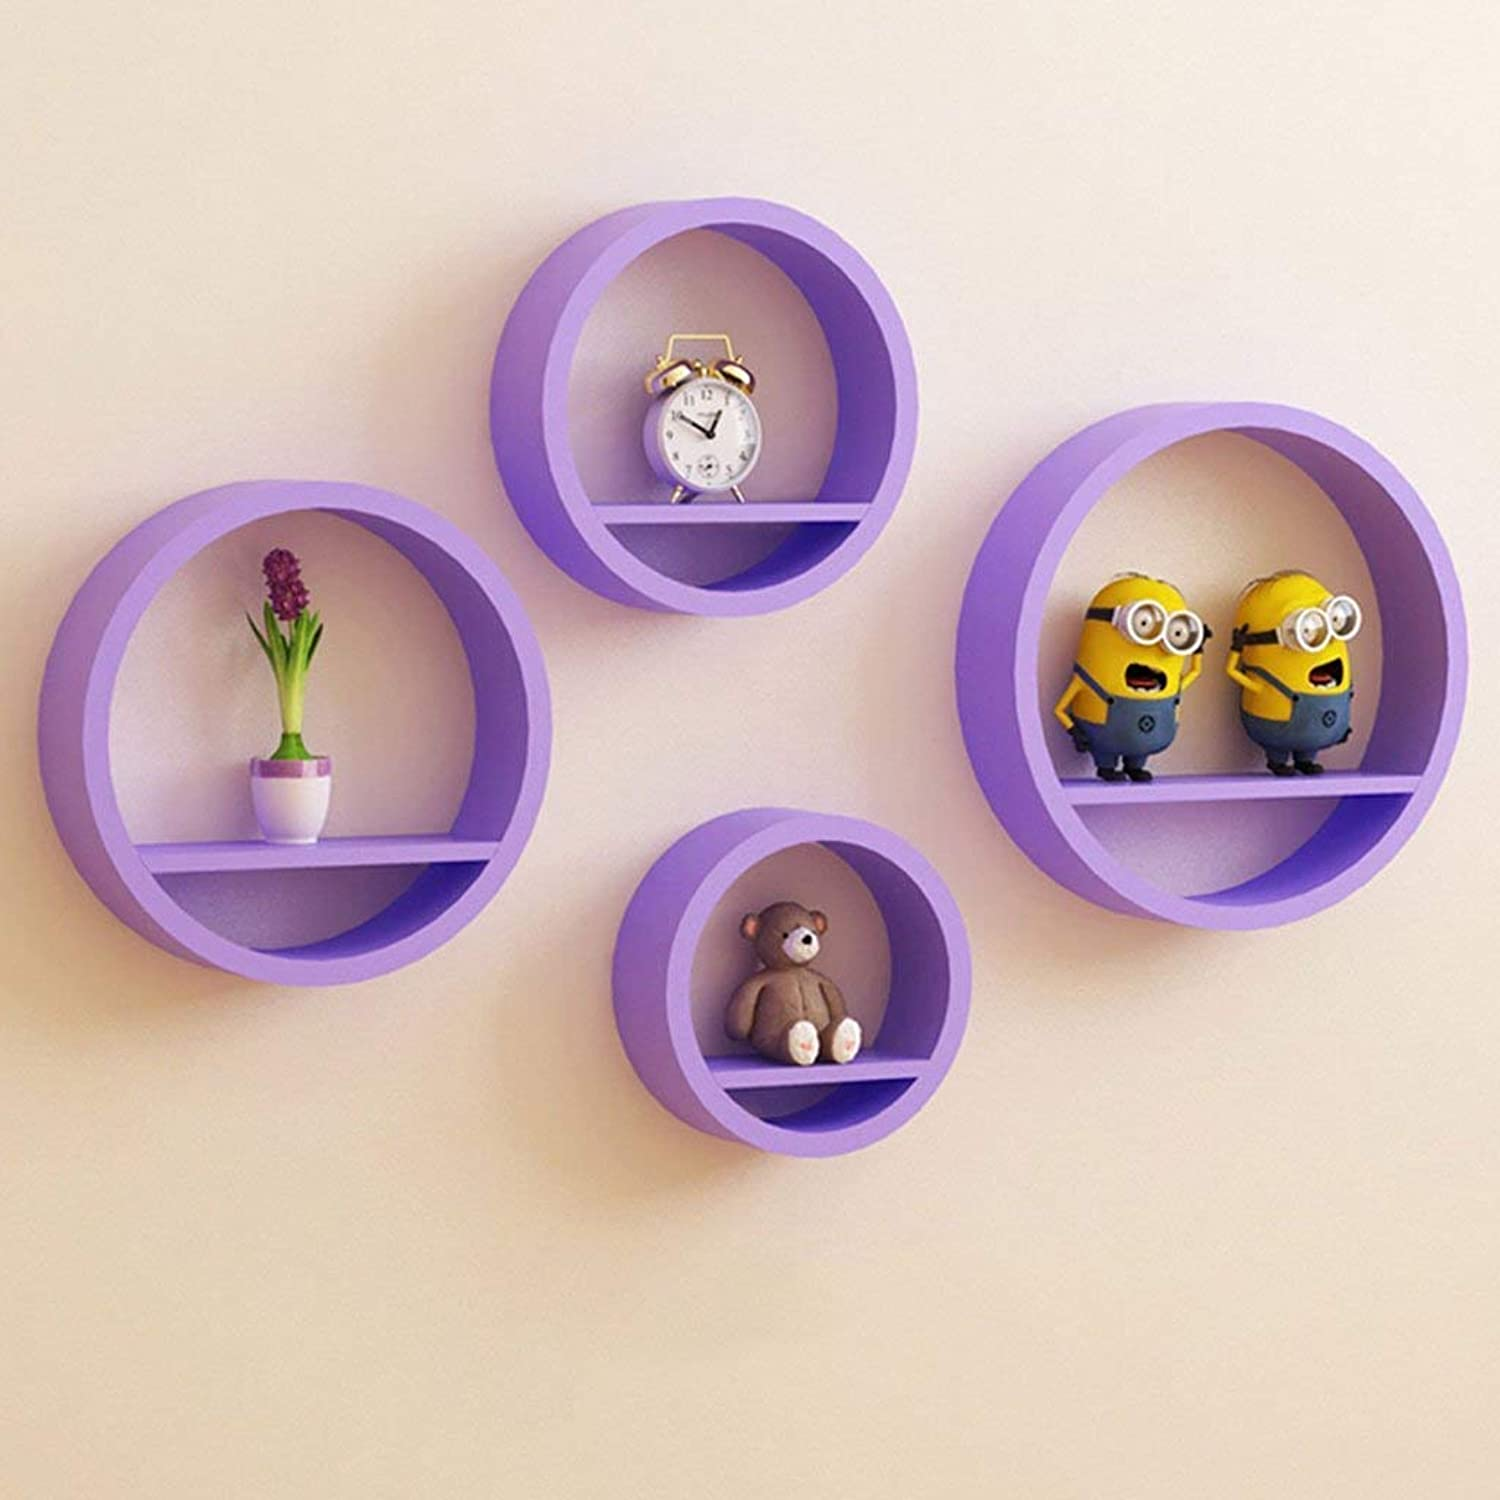 A Set of Four Round Wall Shelves, Living Room Wall Dining Room Wall Hanging Shelf,Save Space,Purple